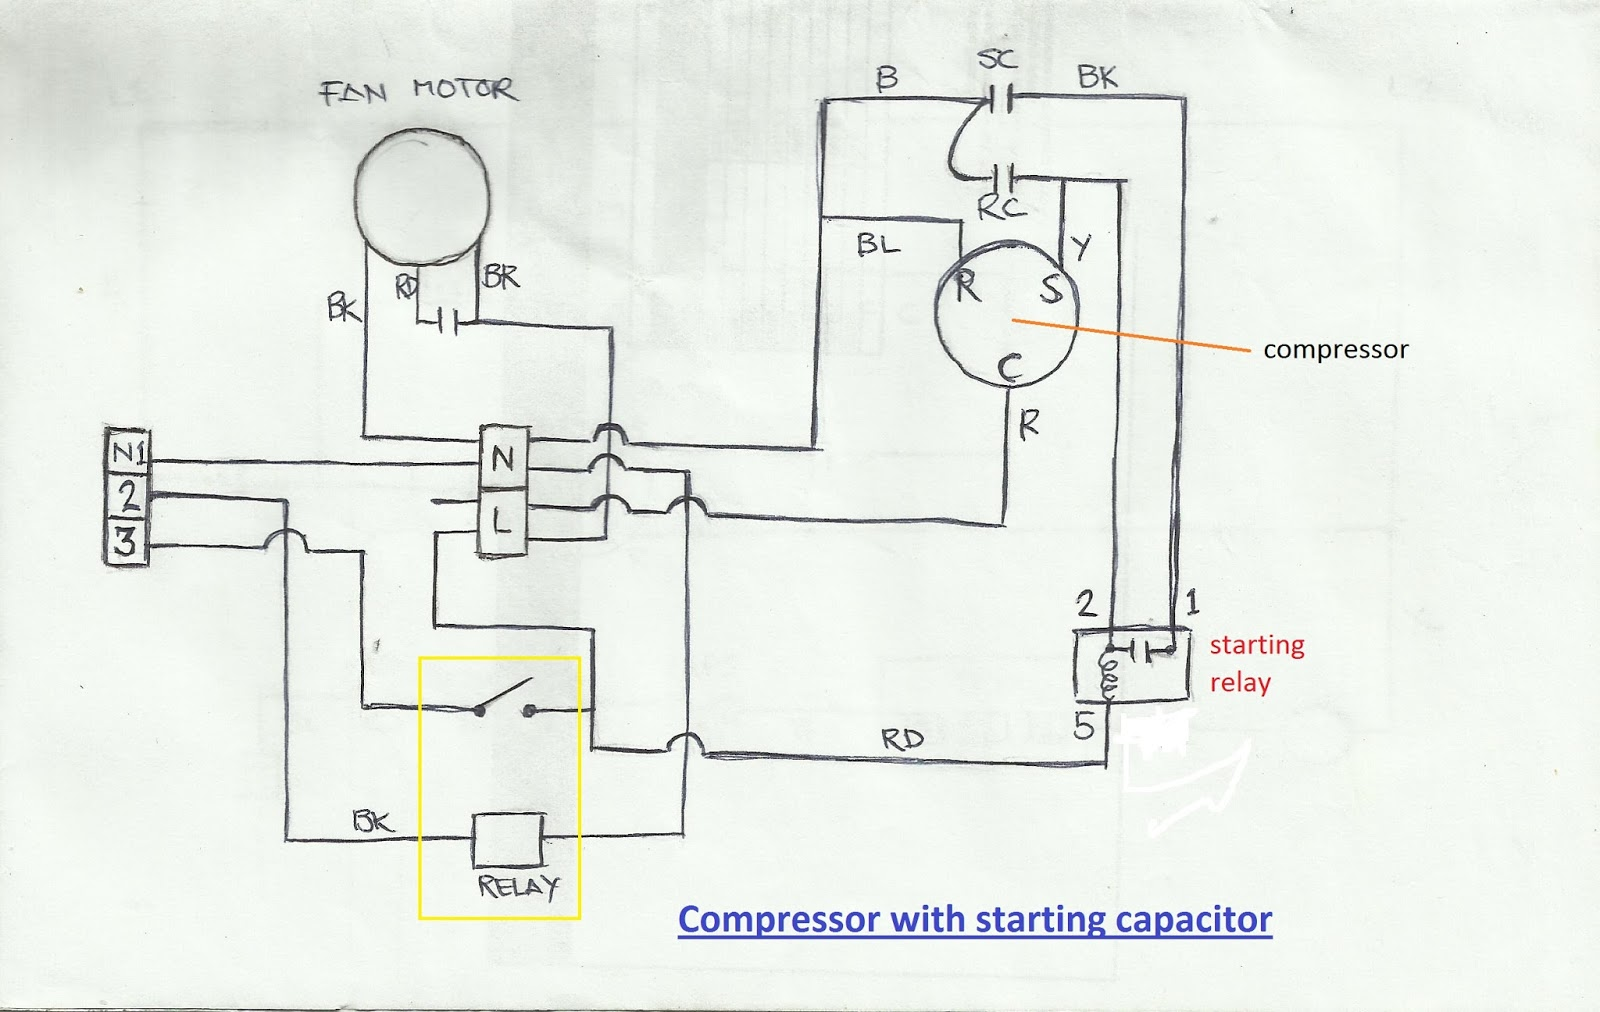 Refrigeration and air conditioning repair wiring diagram of wiring diagram of compressor with starting capacitor cheapraybanclubmaster Image collections